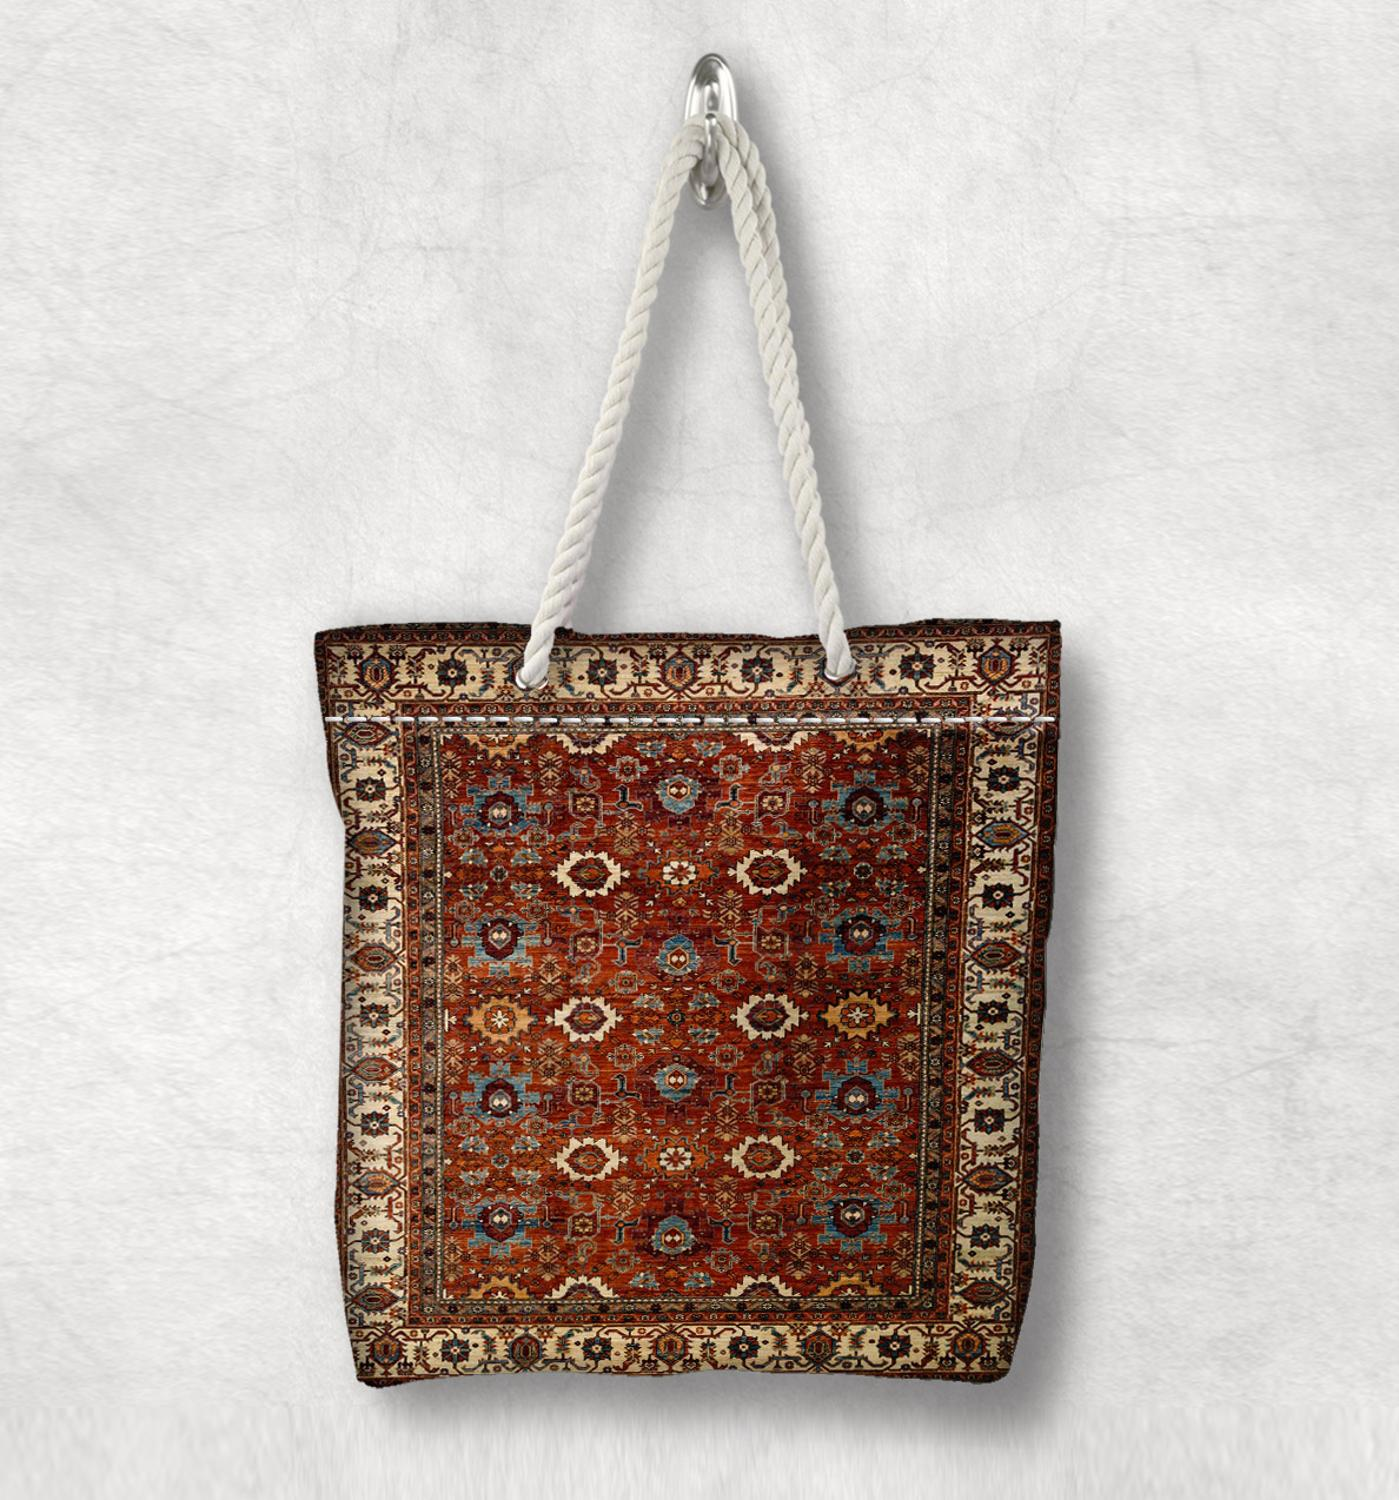 Else Brown Ottoman Anatolia Antique Kilim Design White Rope Handle Canvas Bag Cotton Canvas Zippered Tote Bag Shoulder Bag